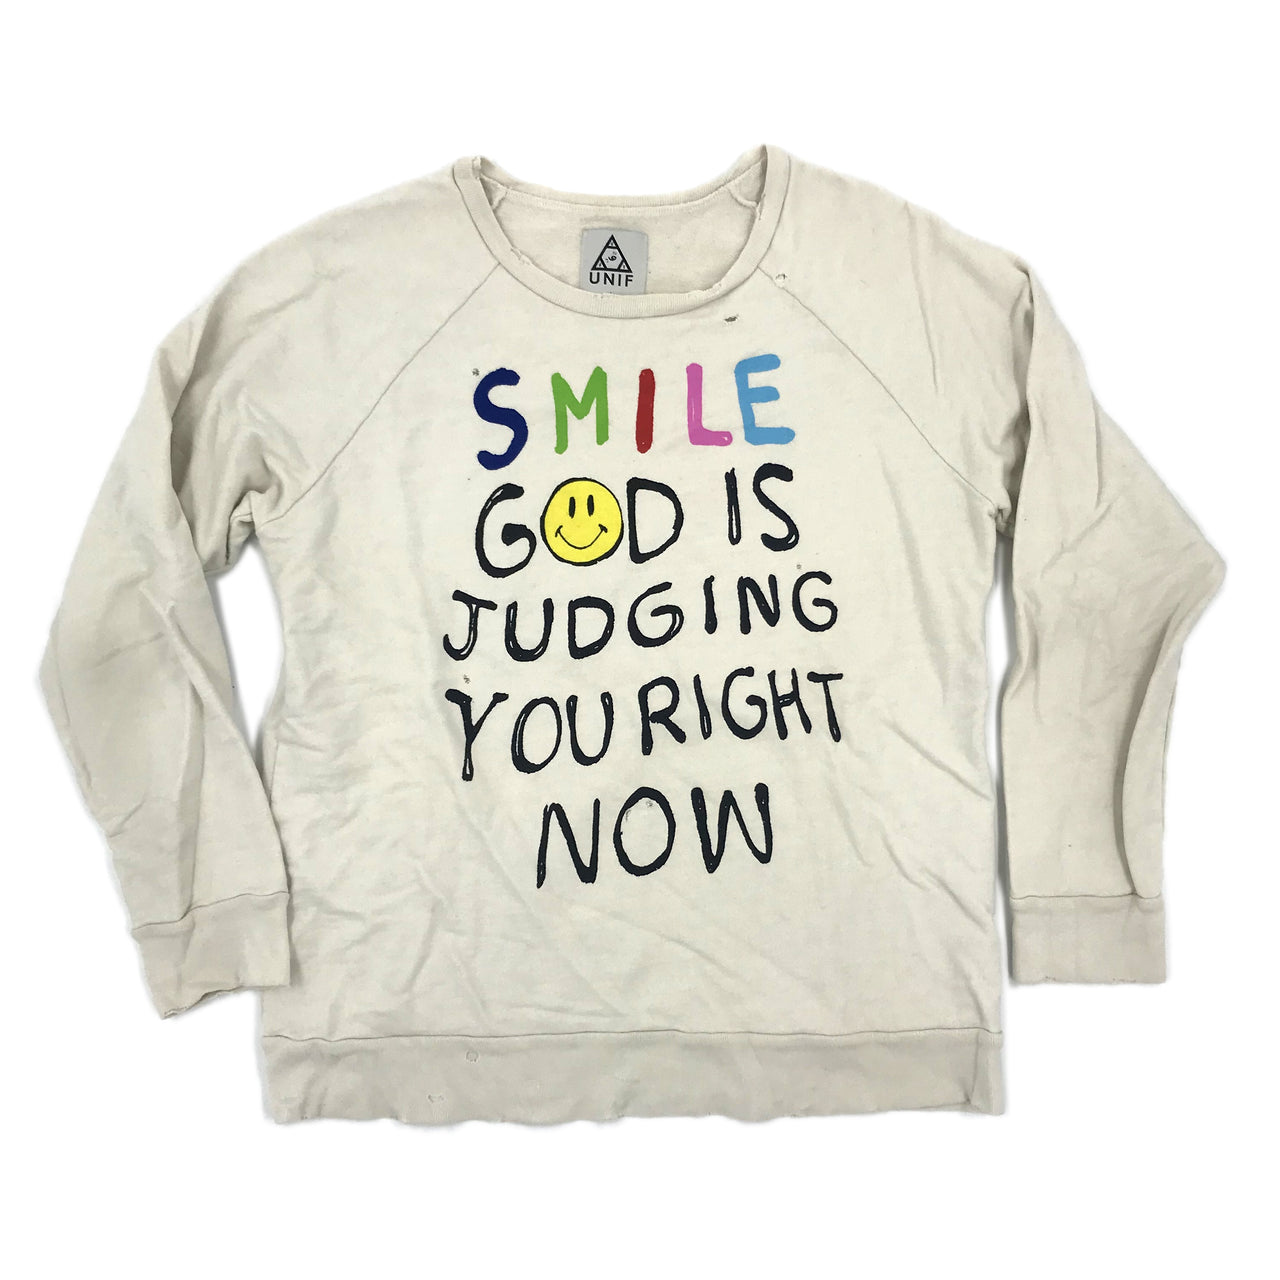 UNIF 'SMILE GOD IS JUDGING YOU RIGHT NOW' CREW